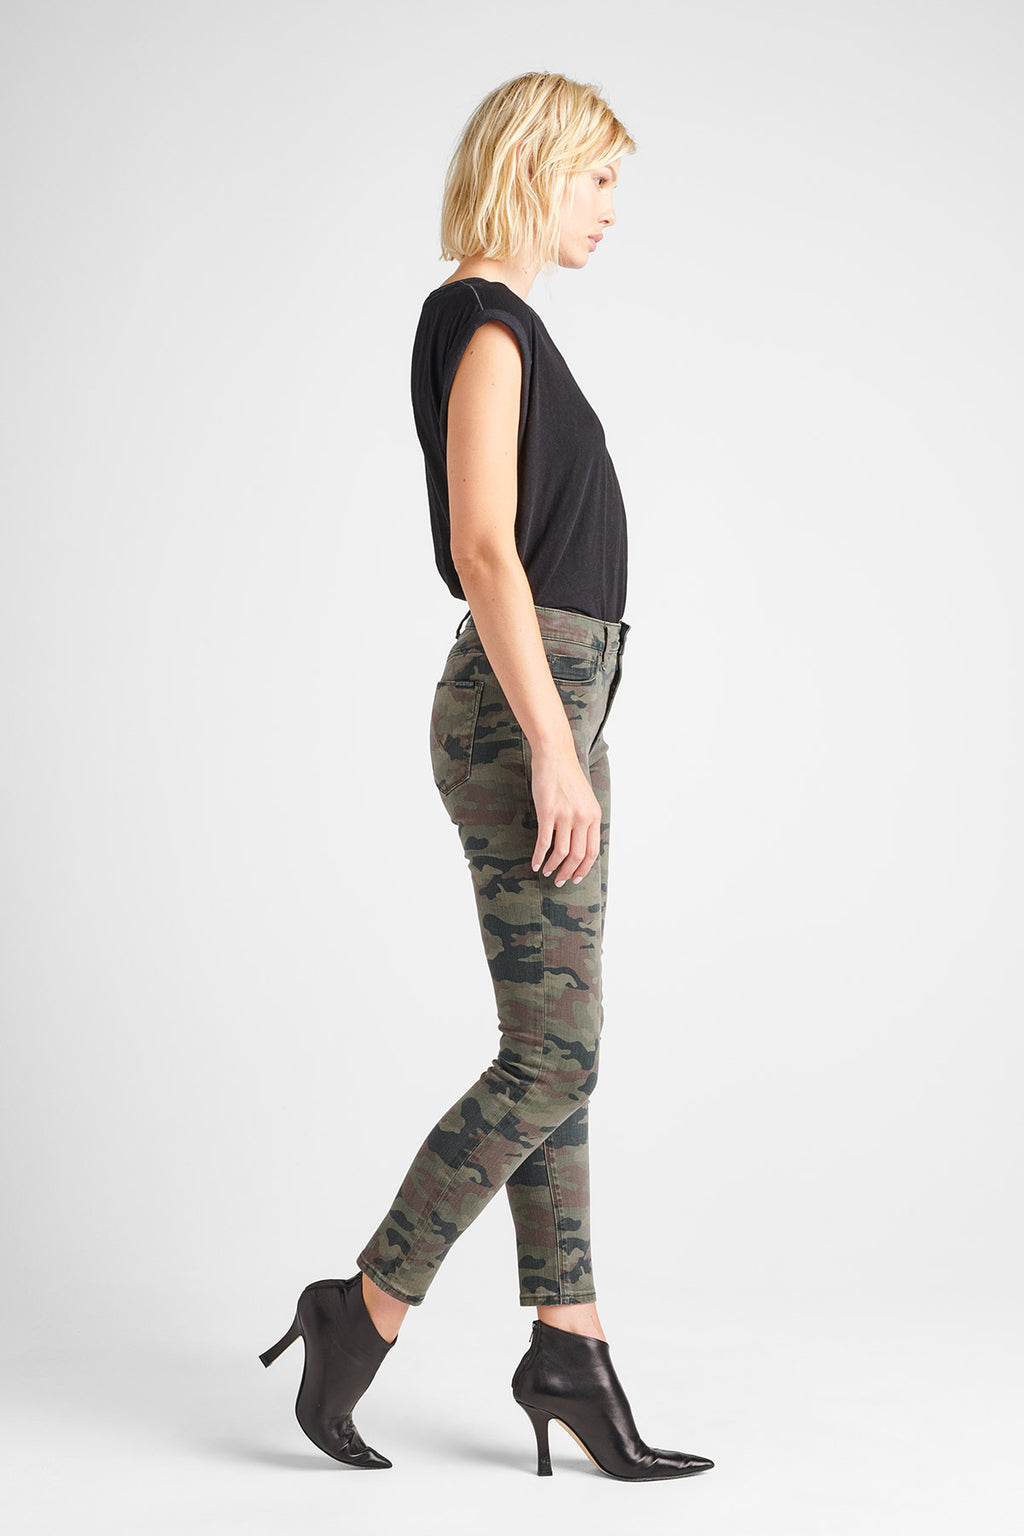 BARBARA HIGH RISE SUPER SKINNY ANKLE JEAN - DEPLOYED CAMO - Image 2